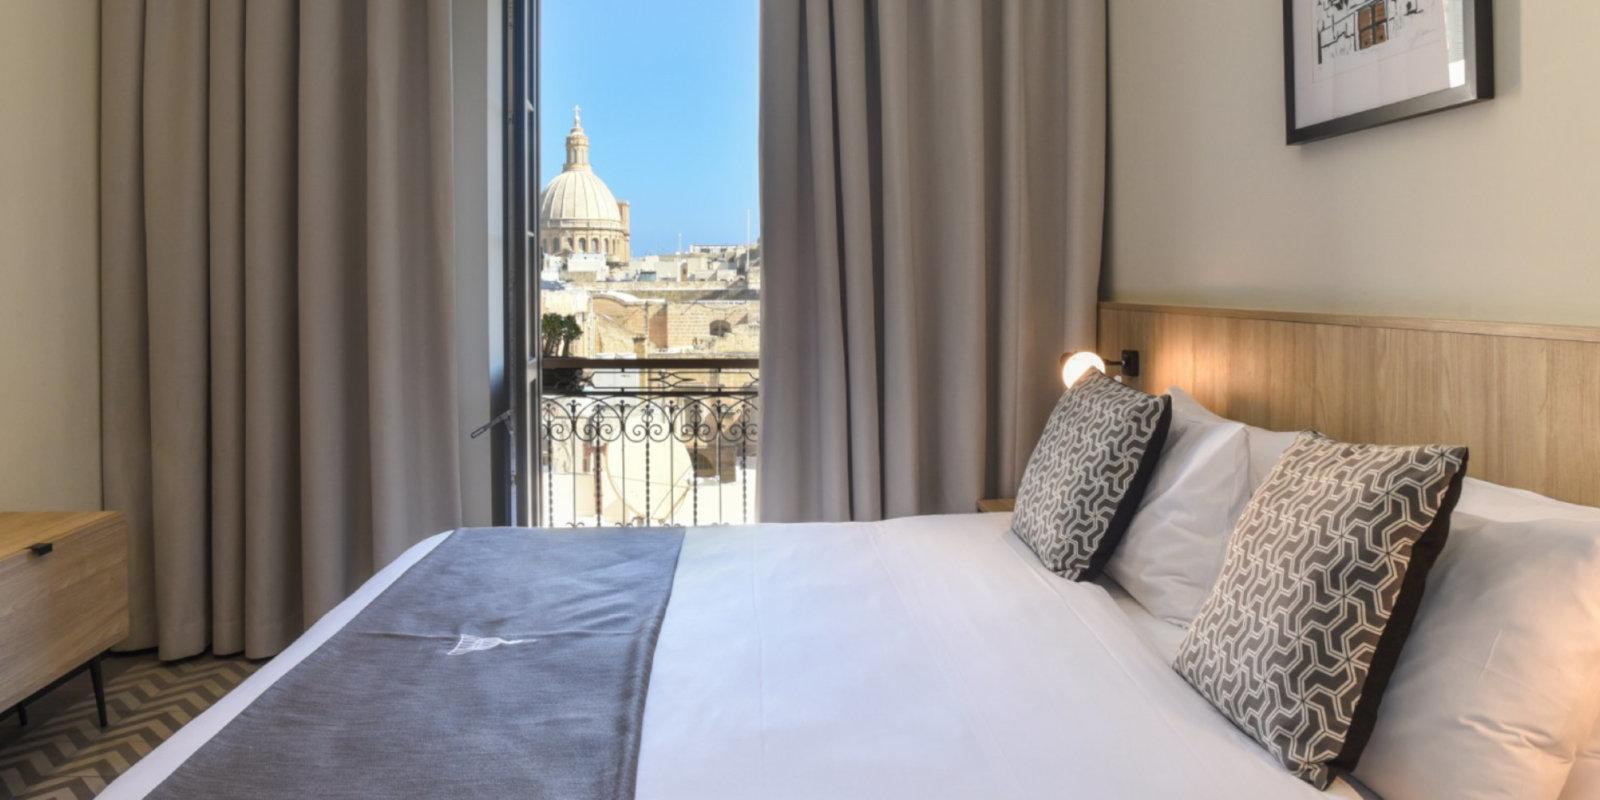 La Falconeria is a beautiful and affordable hotel in the centre of Valletta that gay travellers to Malta will love